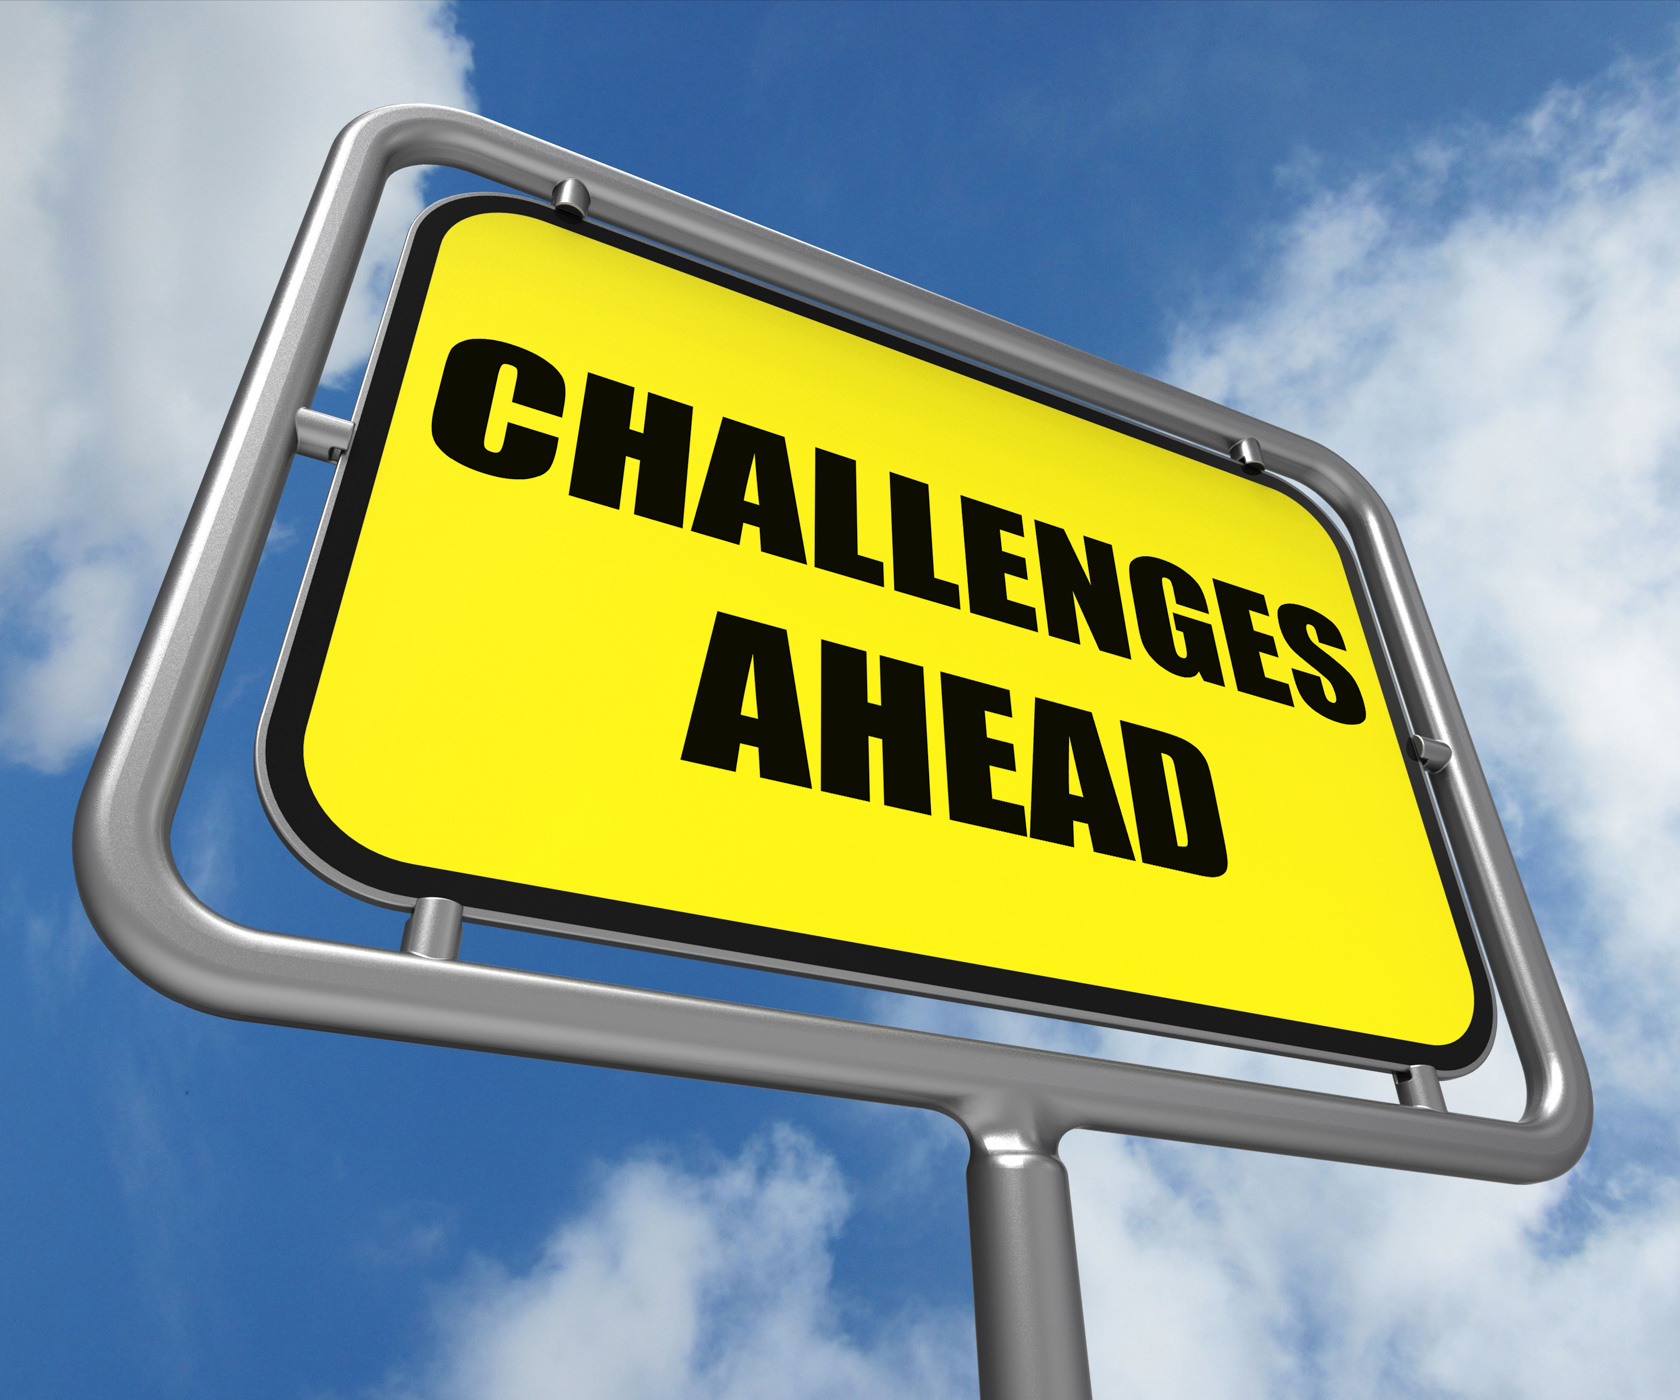 Challenges Ahead Sign Shows to Overcome a Challenge or Difficulty, Ahead, Overcome, Trouble, Sign, HQ Photo